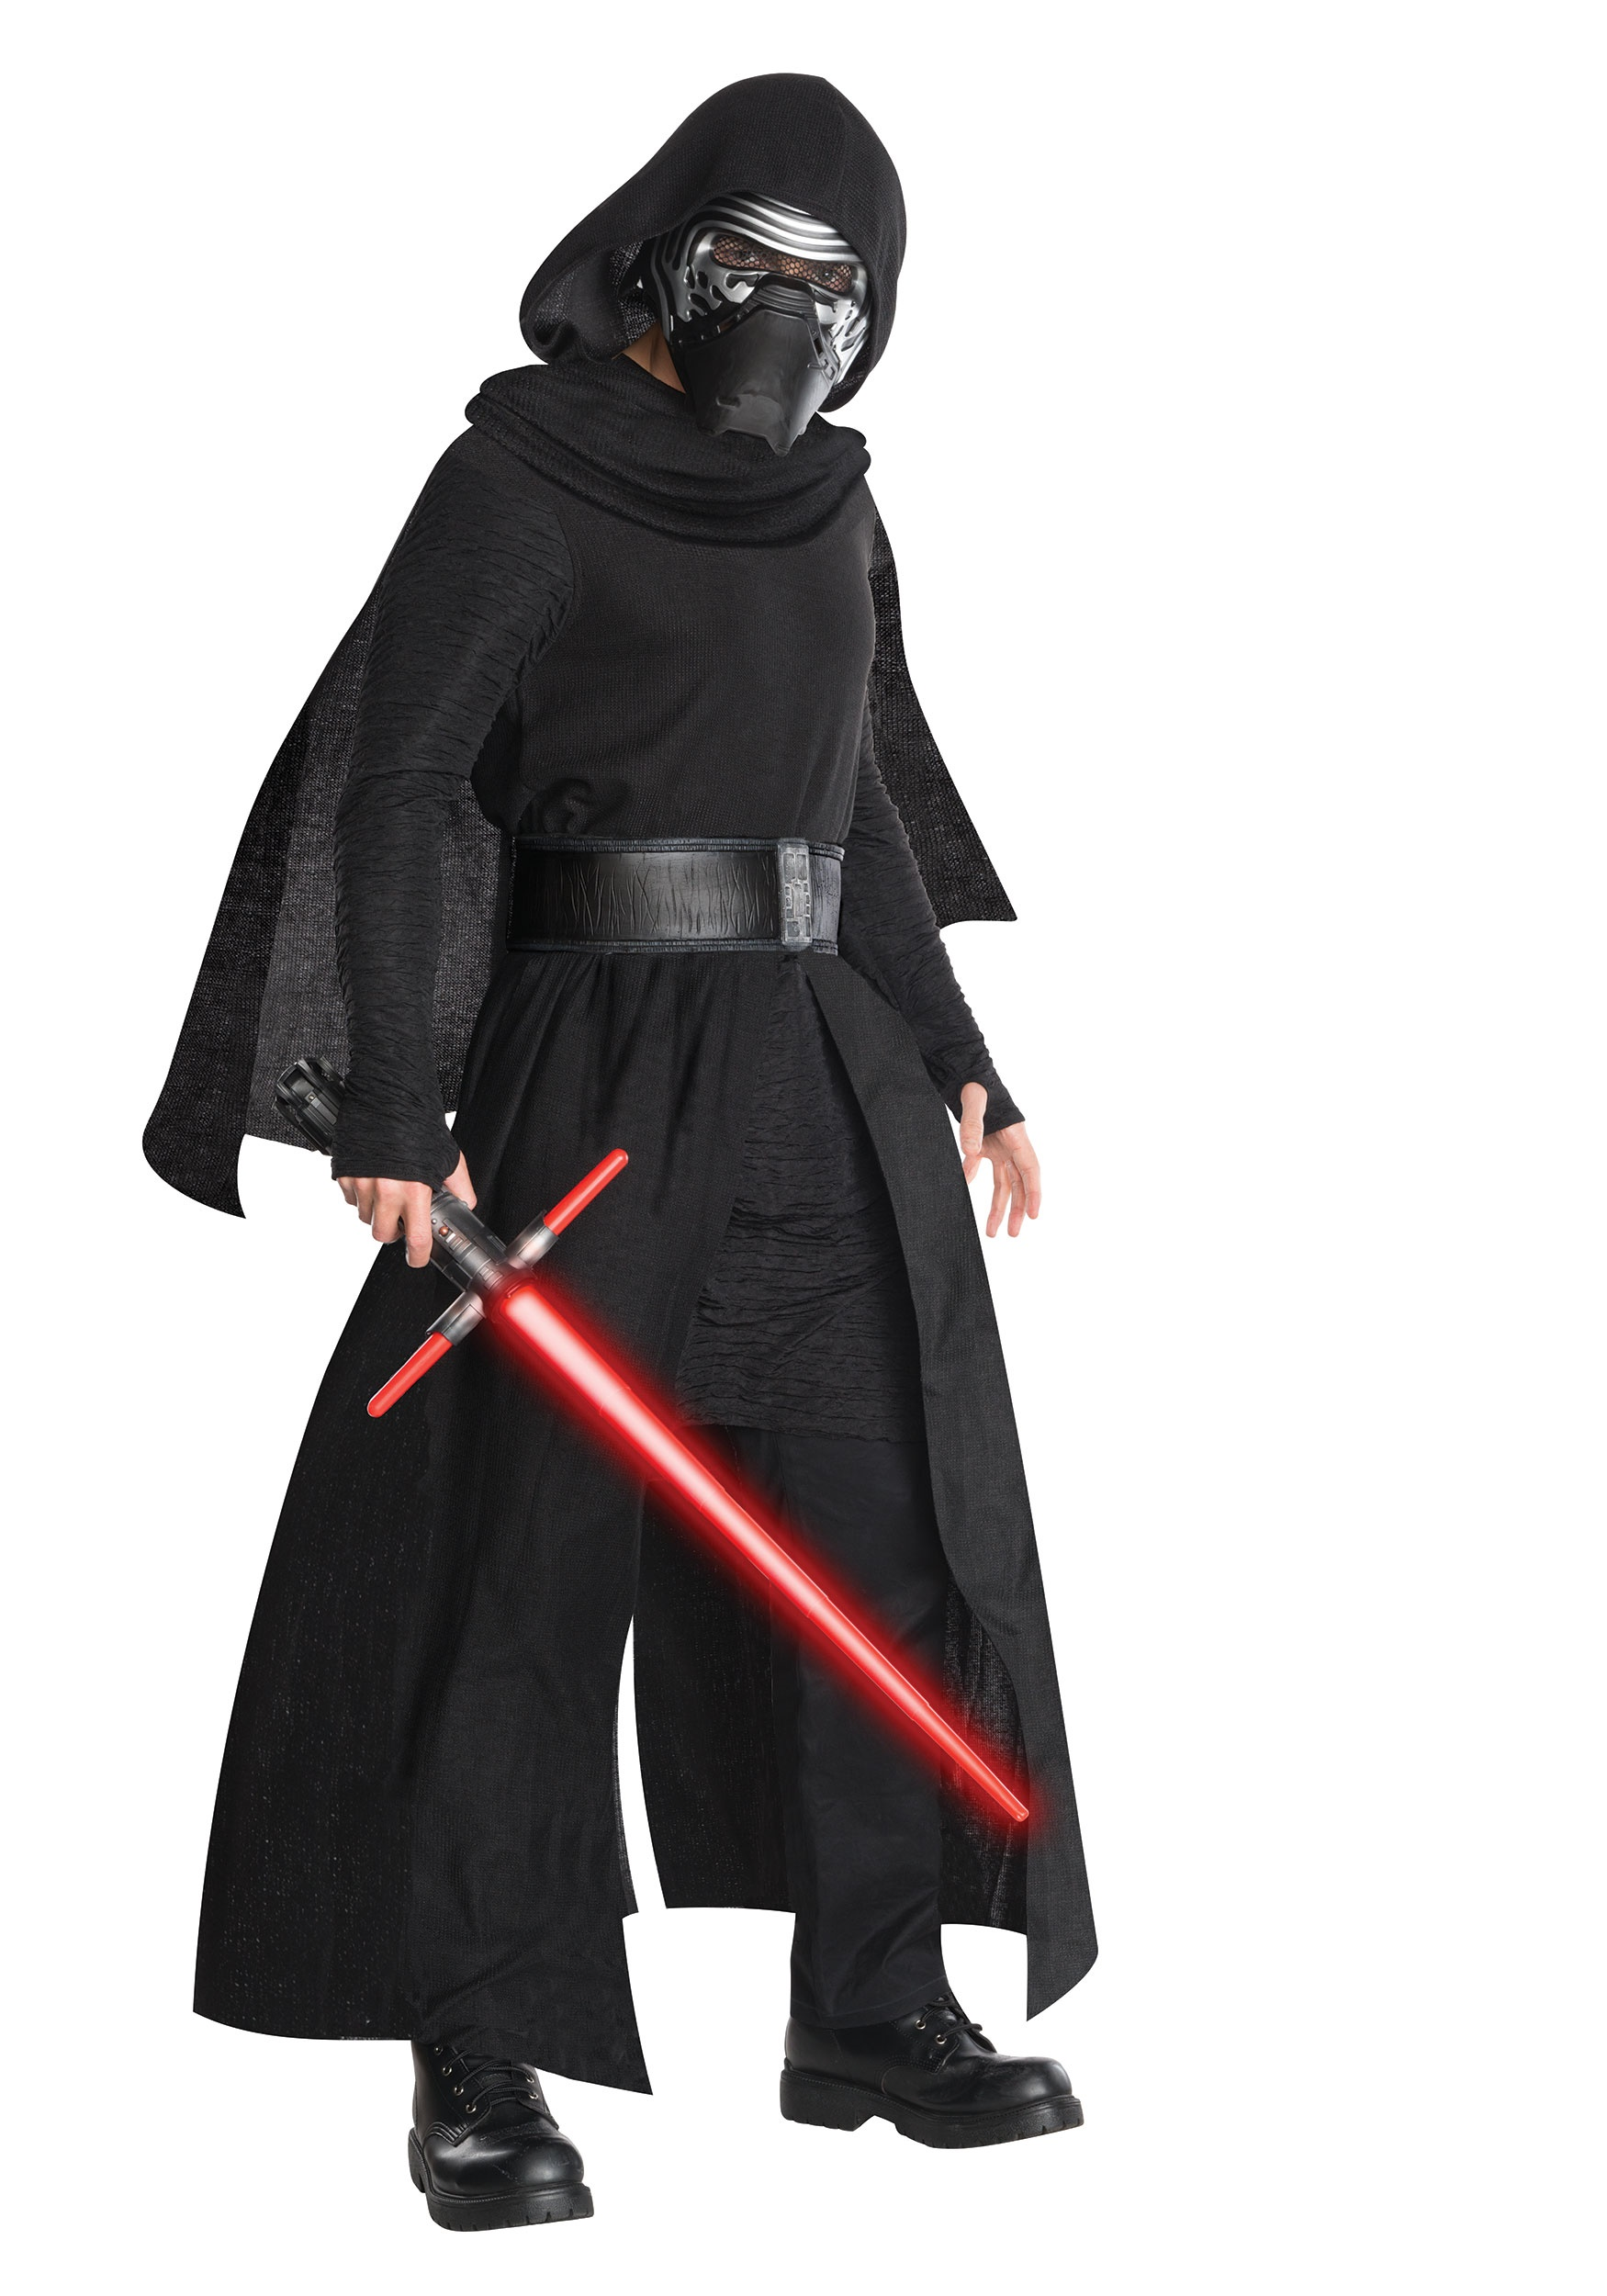 Super Deluxe Kylo Ren Adult Costume from Star Wars the Force Awakens